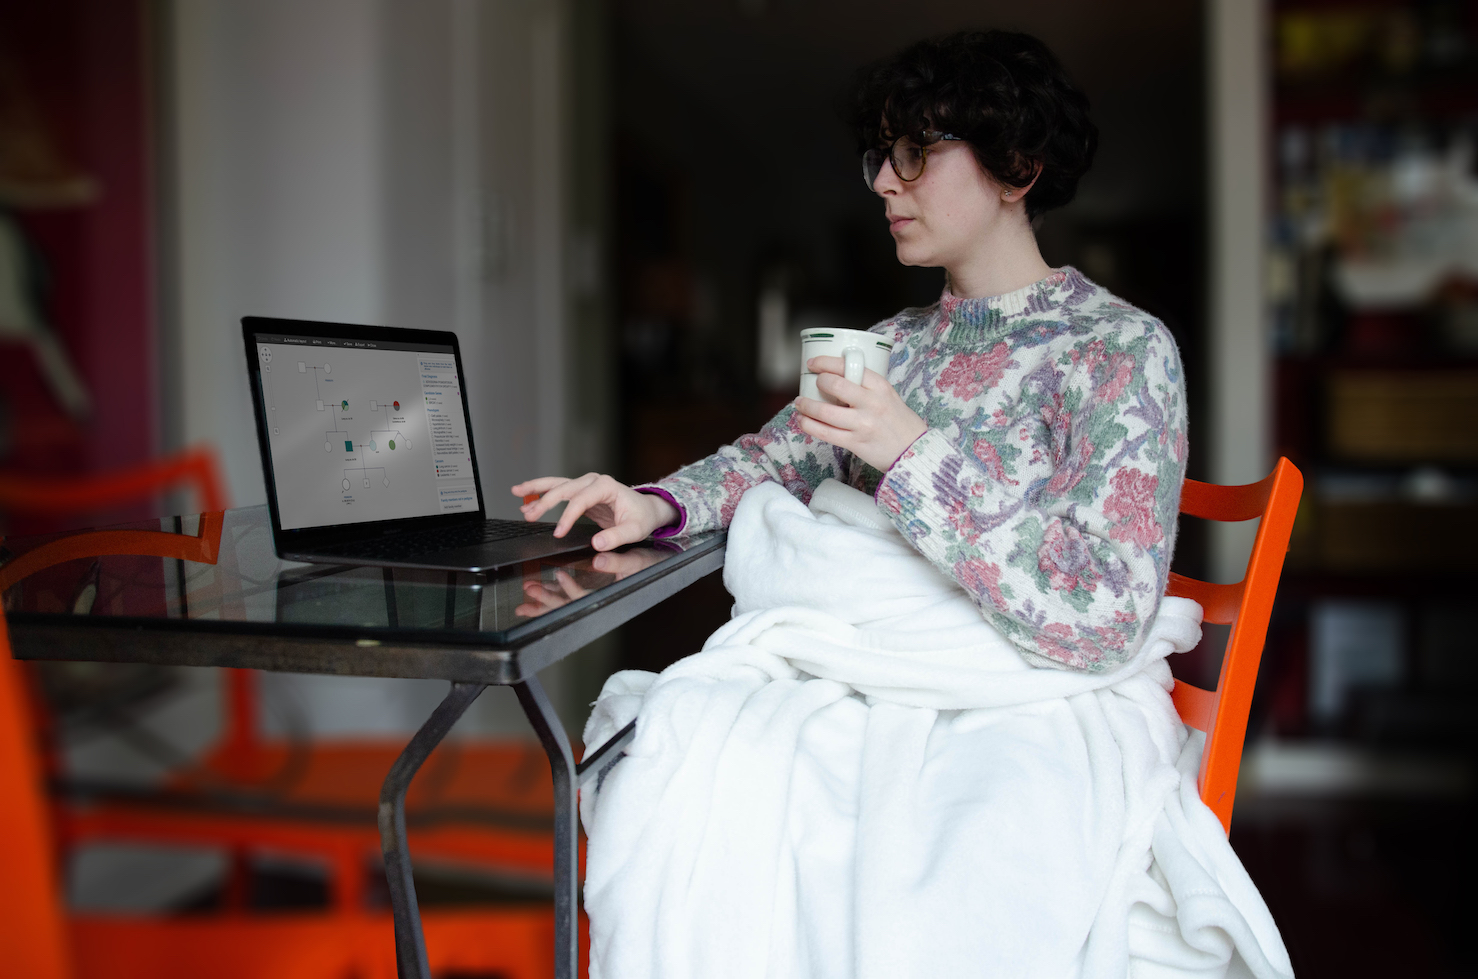 A woman is working on her laptop in her kitchen table with a mug in hand and a blanket over her legs. On the laptop screen, a pedigree is visible, and one hand rests on the mouse keyboard mid-action while drawing the pedigree.